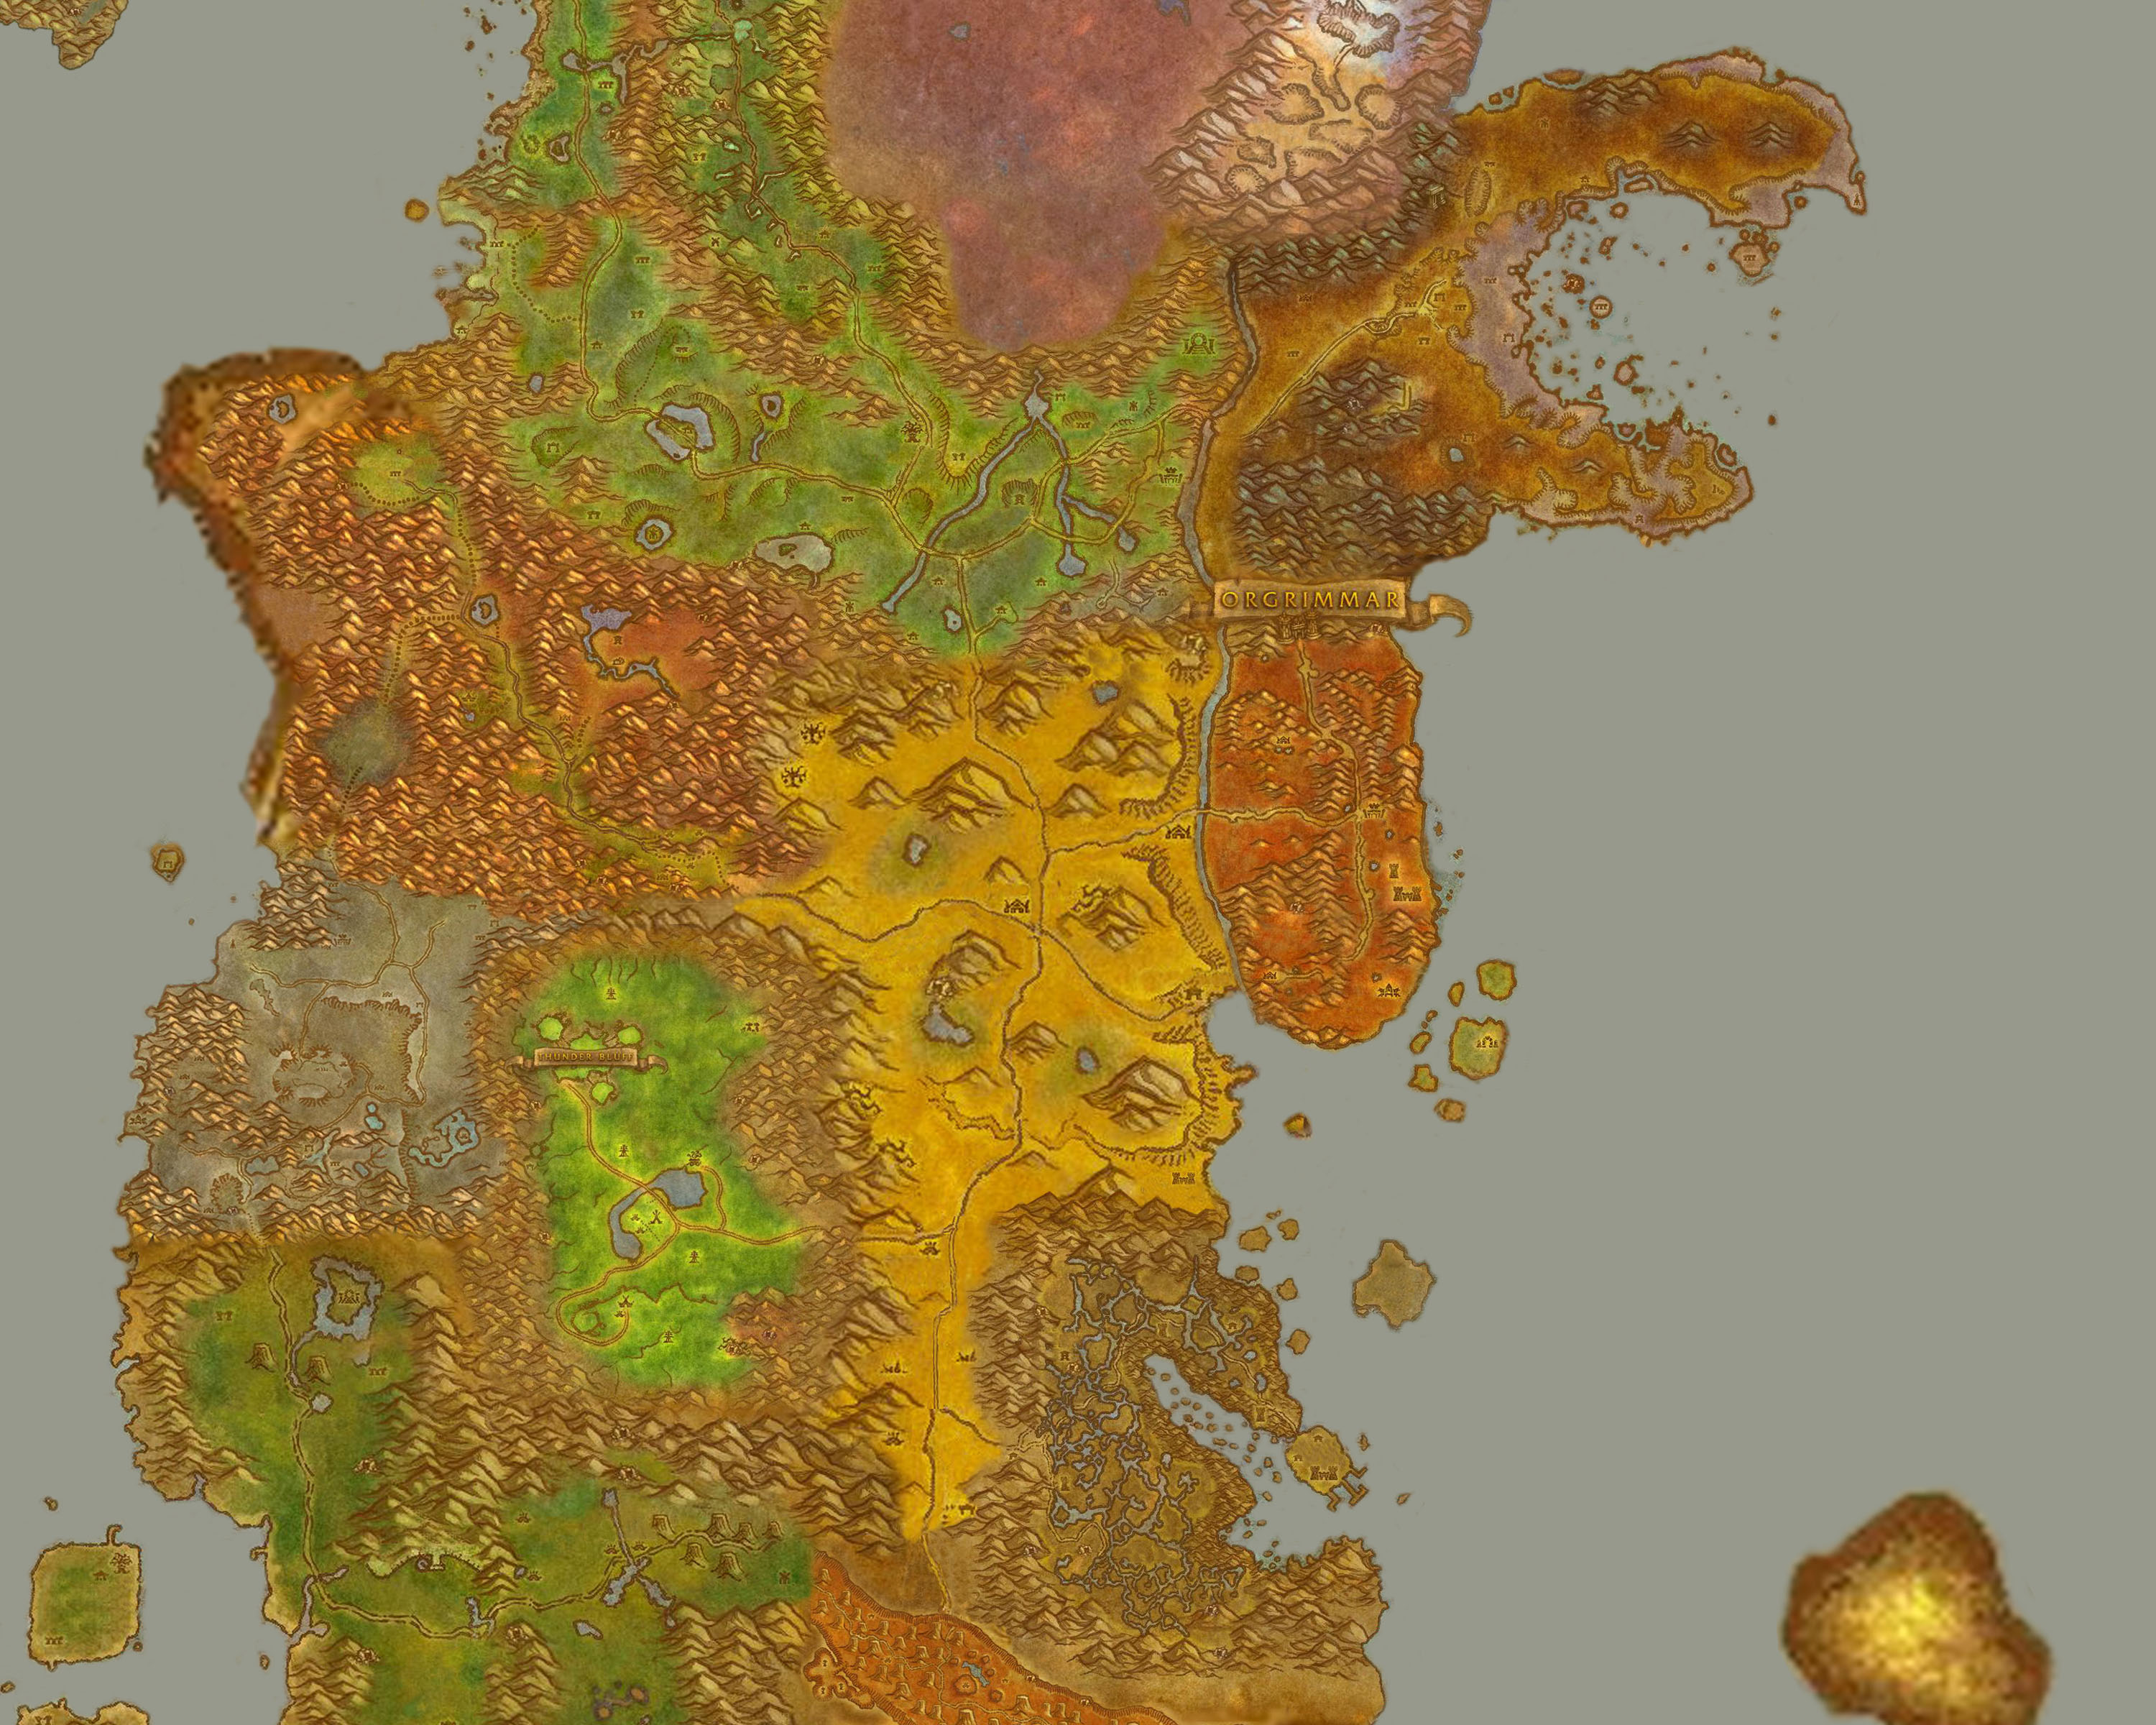 Greywolfs World Of Warcraft Fan Site Travel - World map no labels